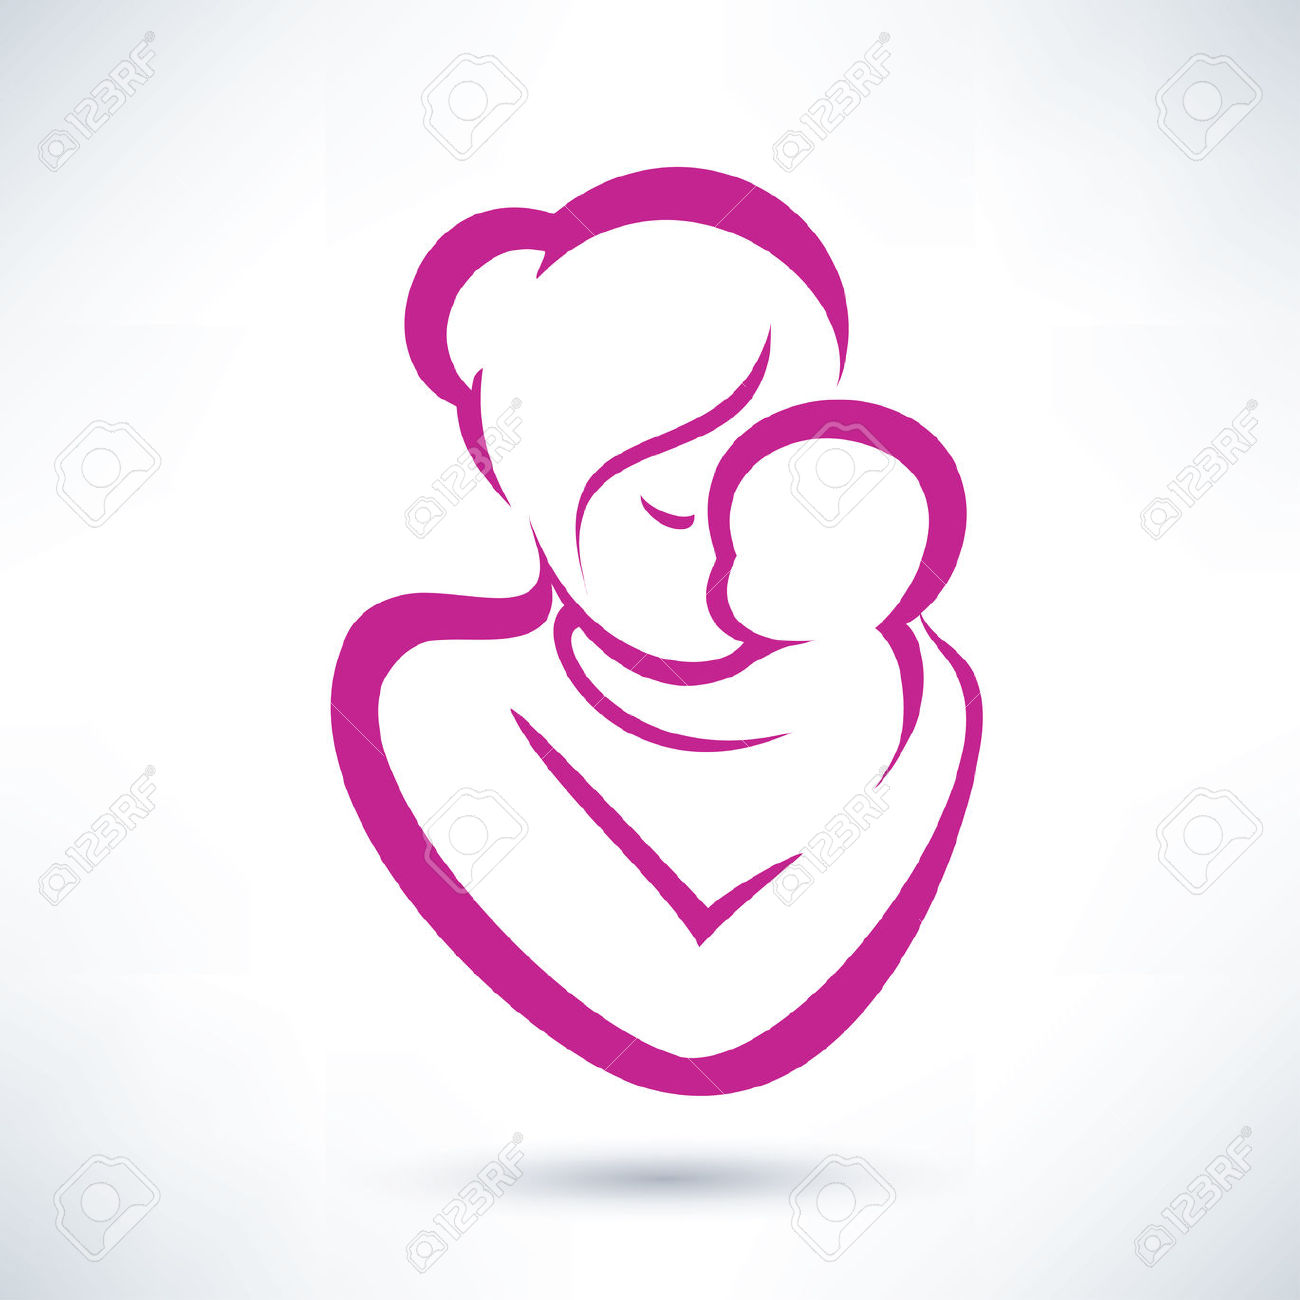 Mom and baby clipart 5 » Clipart Station.